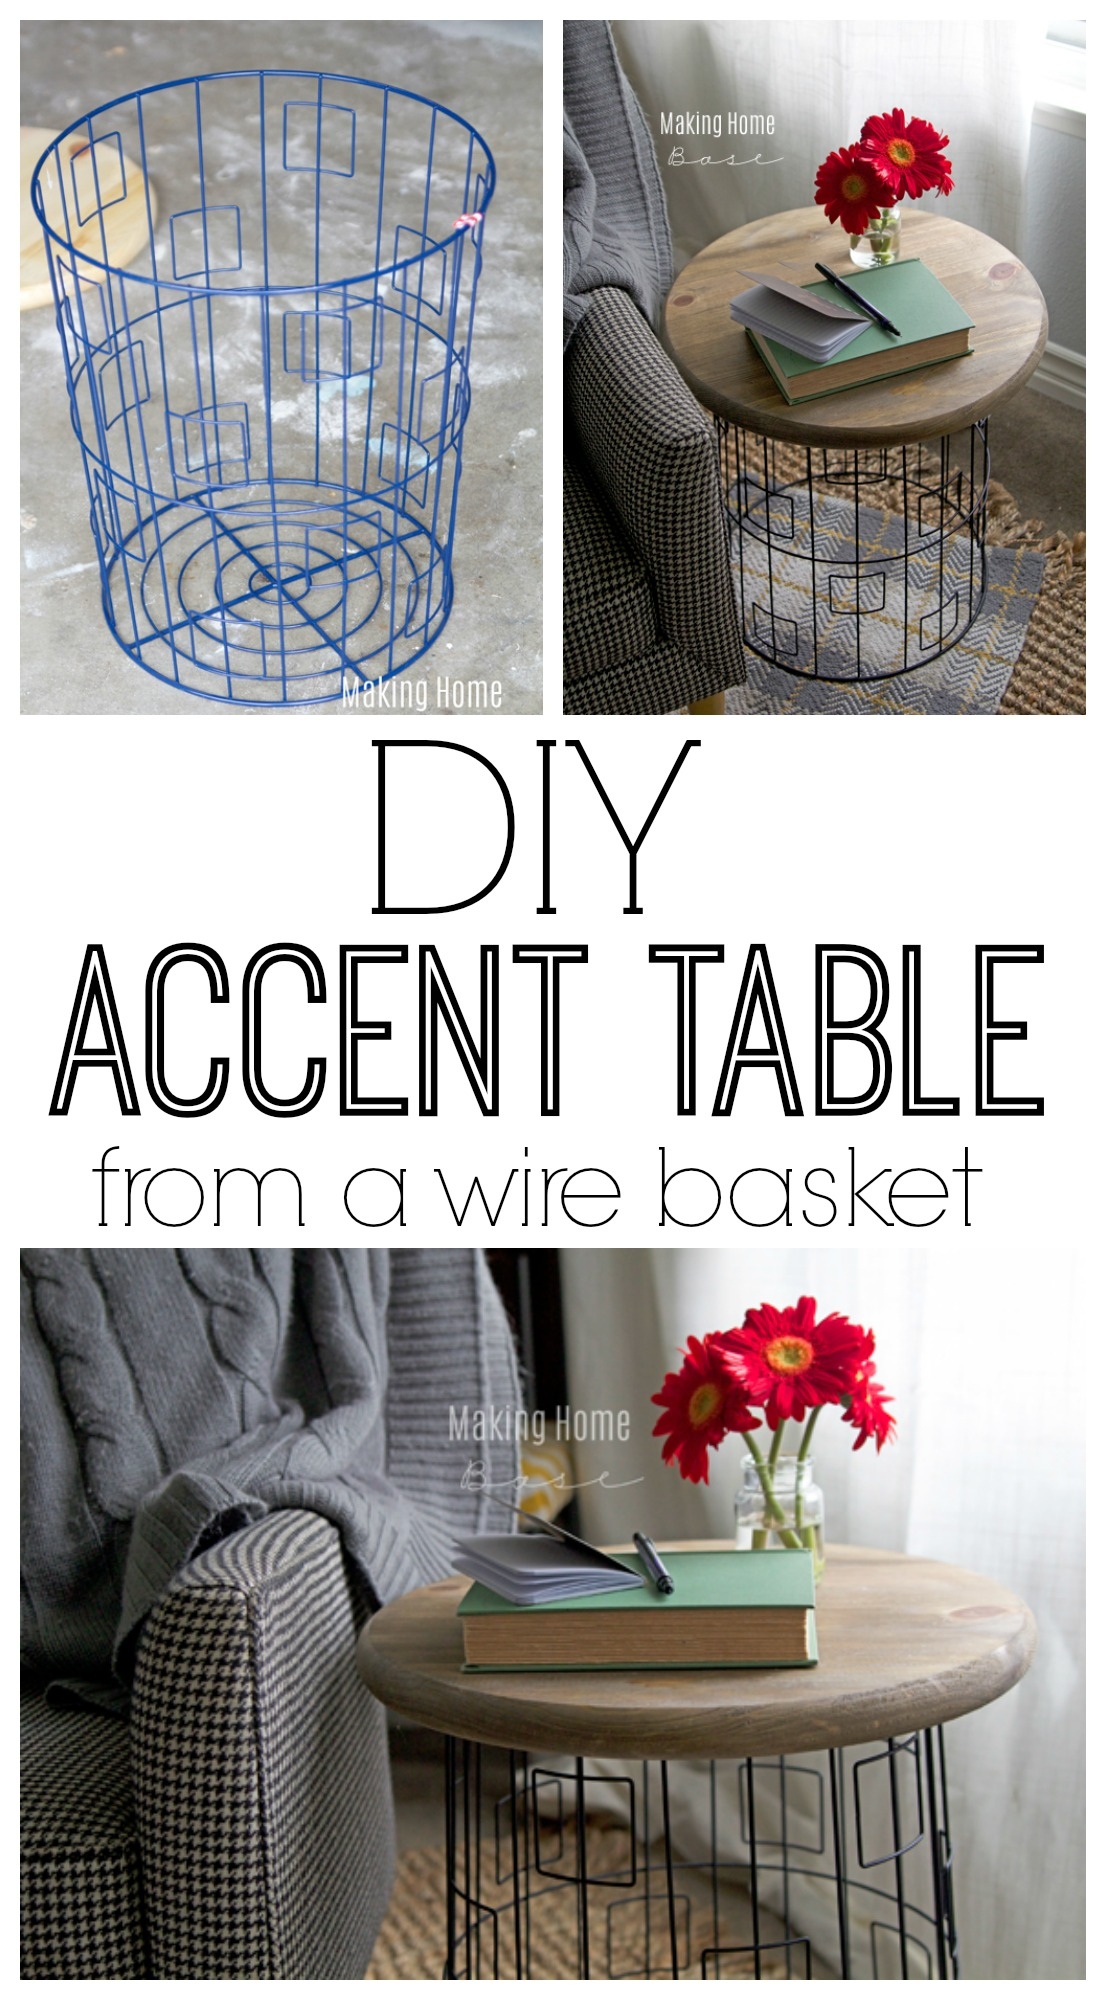 diy accent table from wire laundry basket ideas floor separator black and mirror coffee antique round lamp wood top end dorm half coastal bathroom accessories wicker outdoor